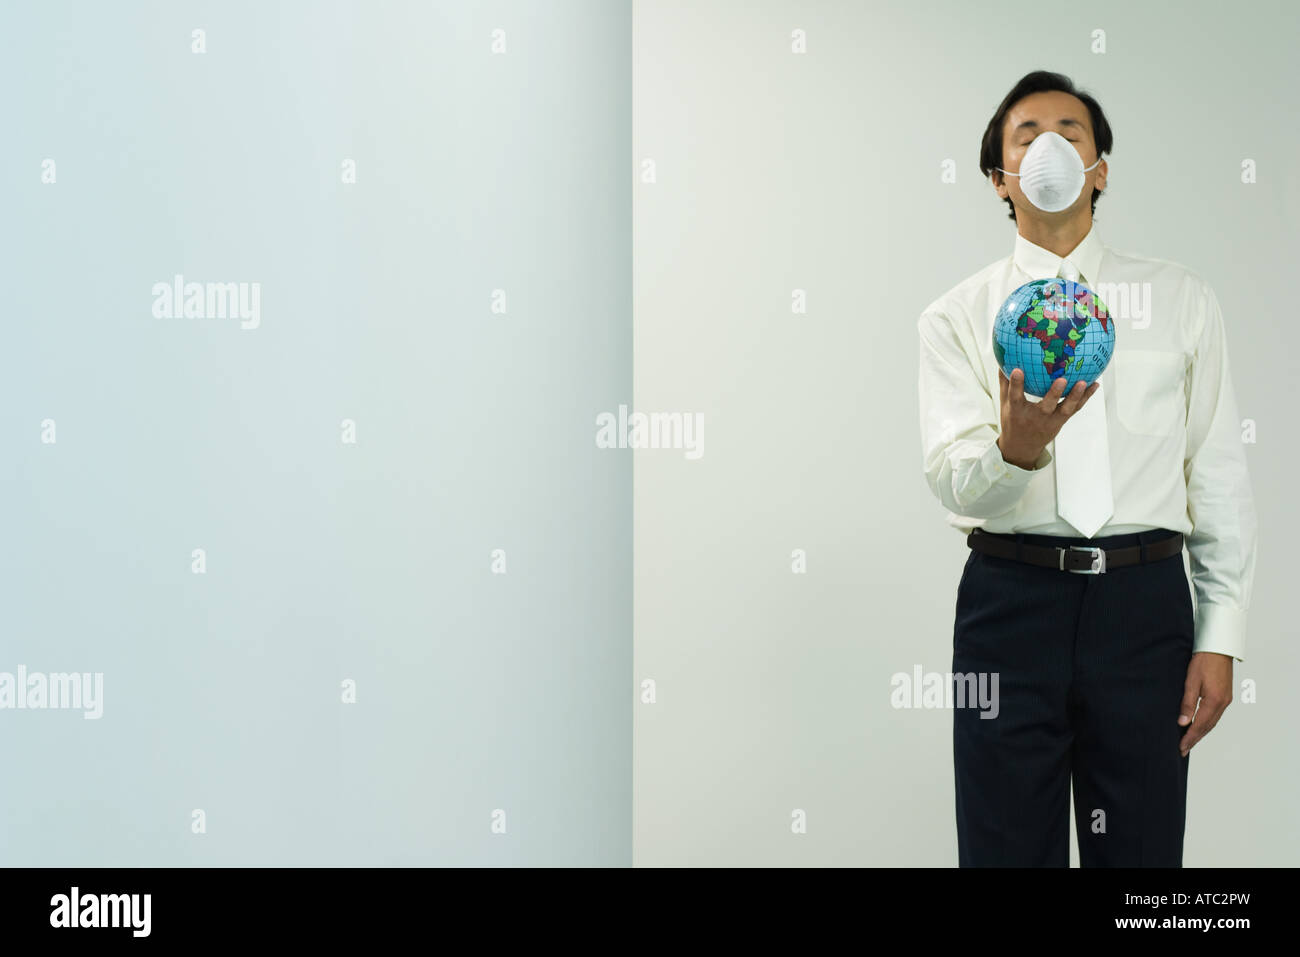 Businessman wearing pollution mask, holding out globe, eyes closed, front view - Stock Image